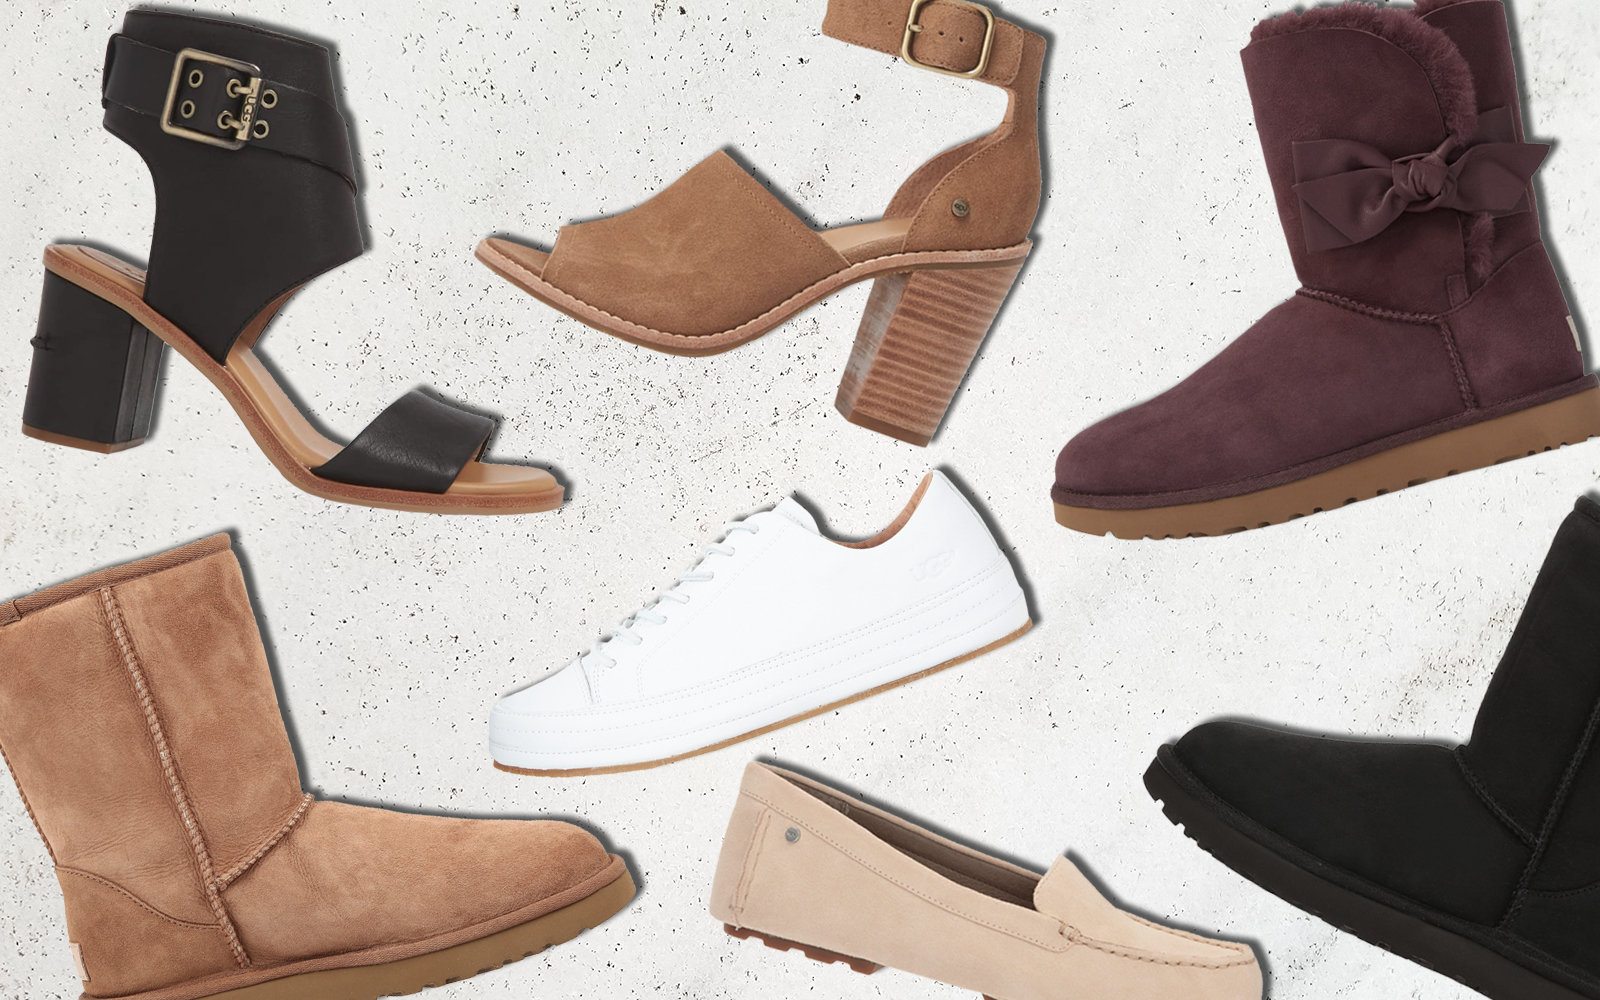 e7d6a53d3ea Behind the Rise, Fall and Revival of the Ugg Boot